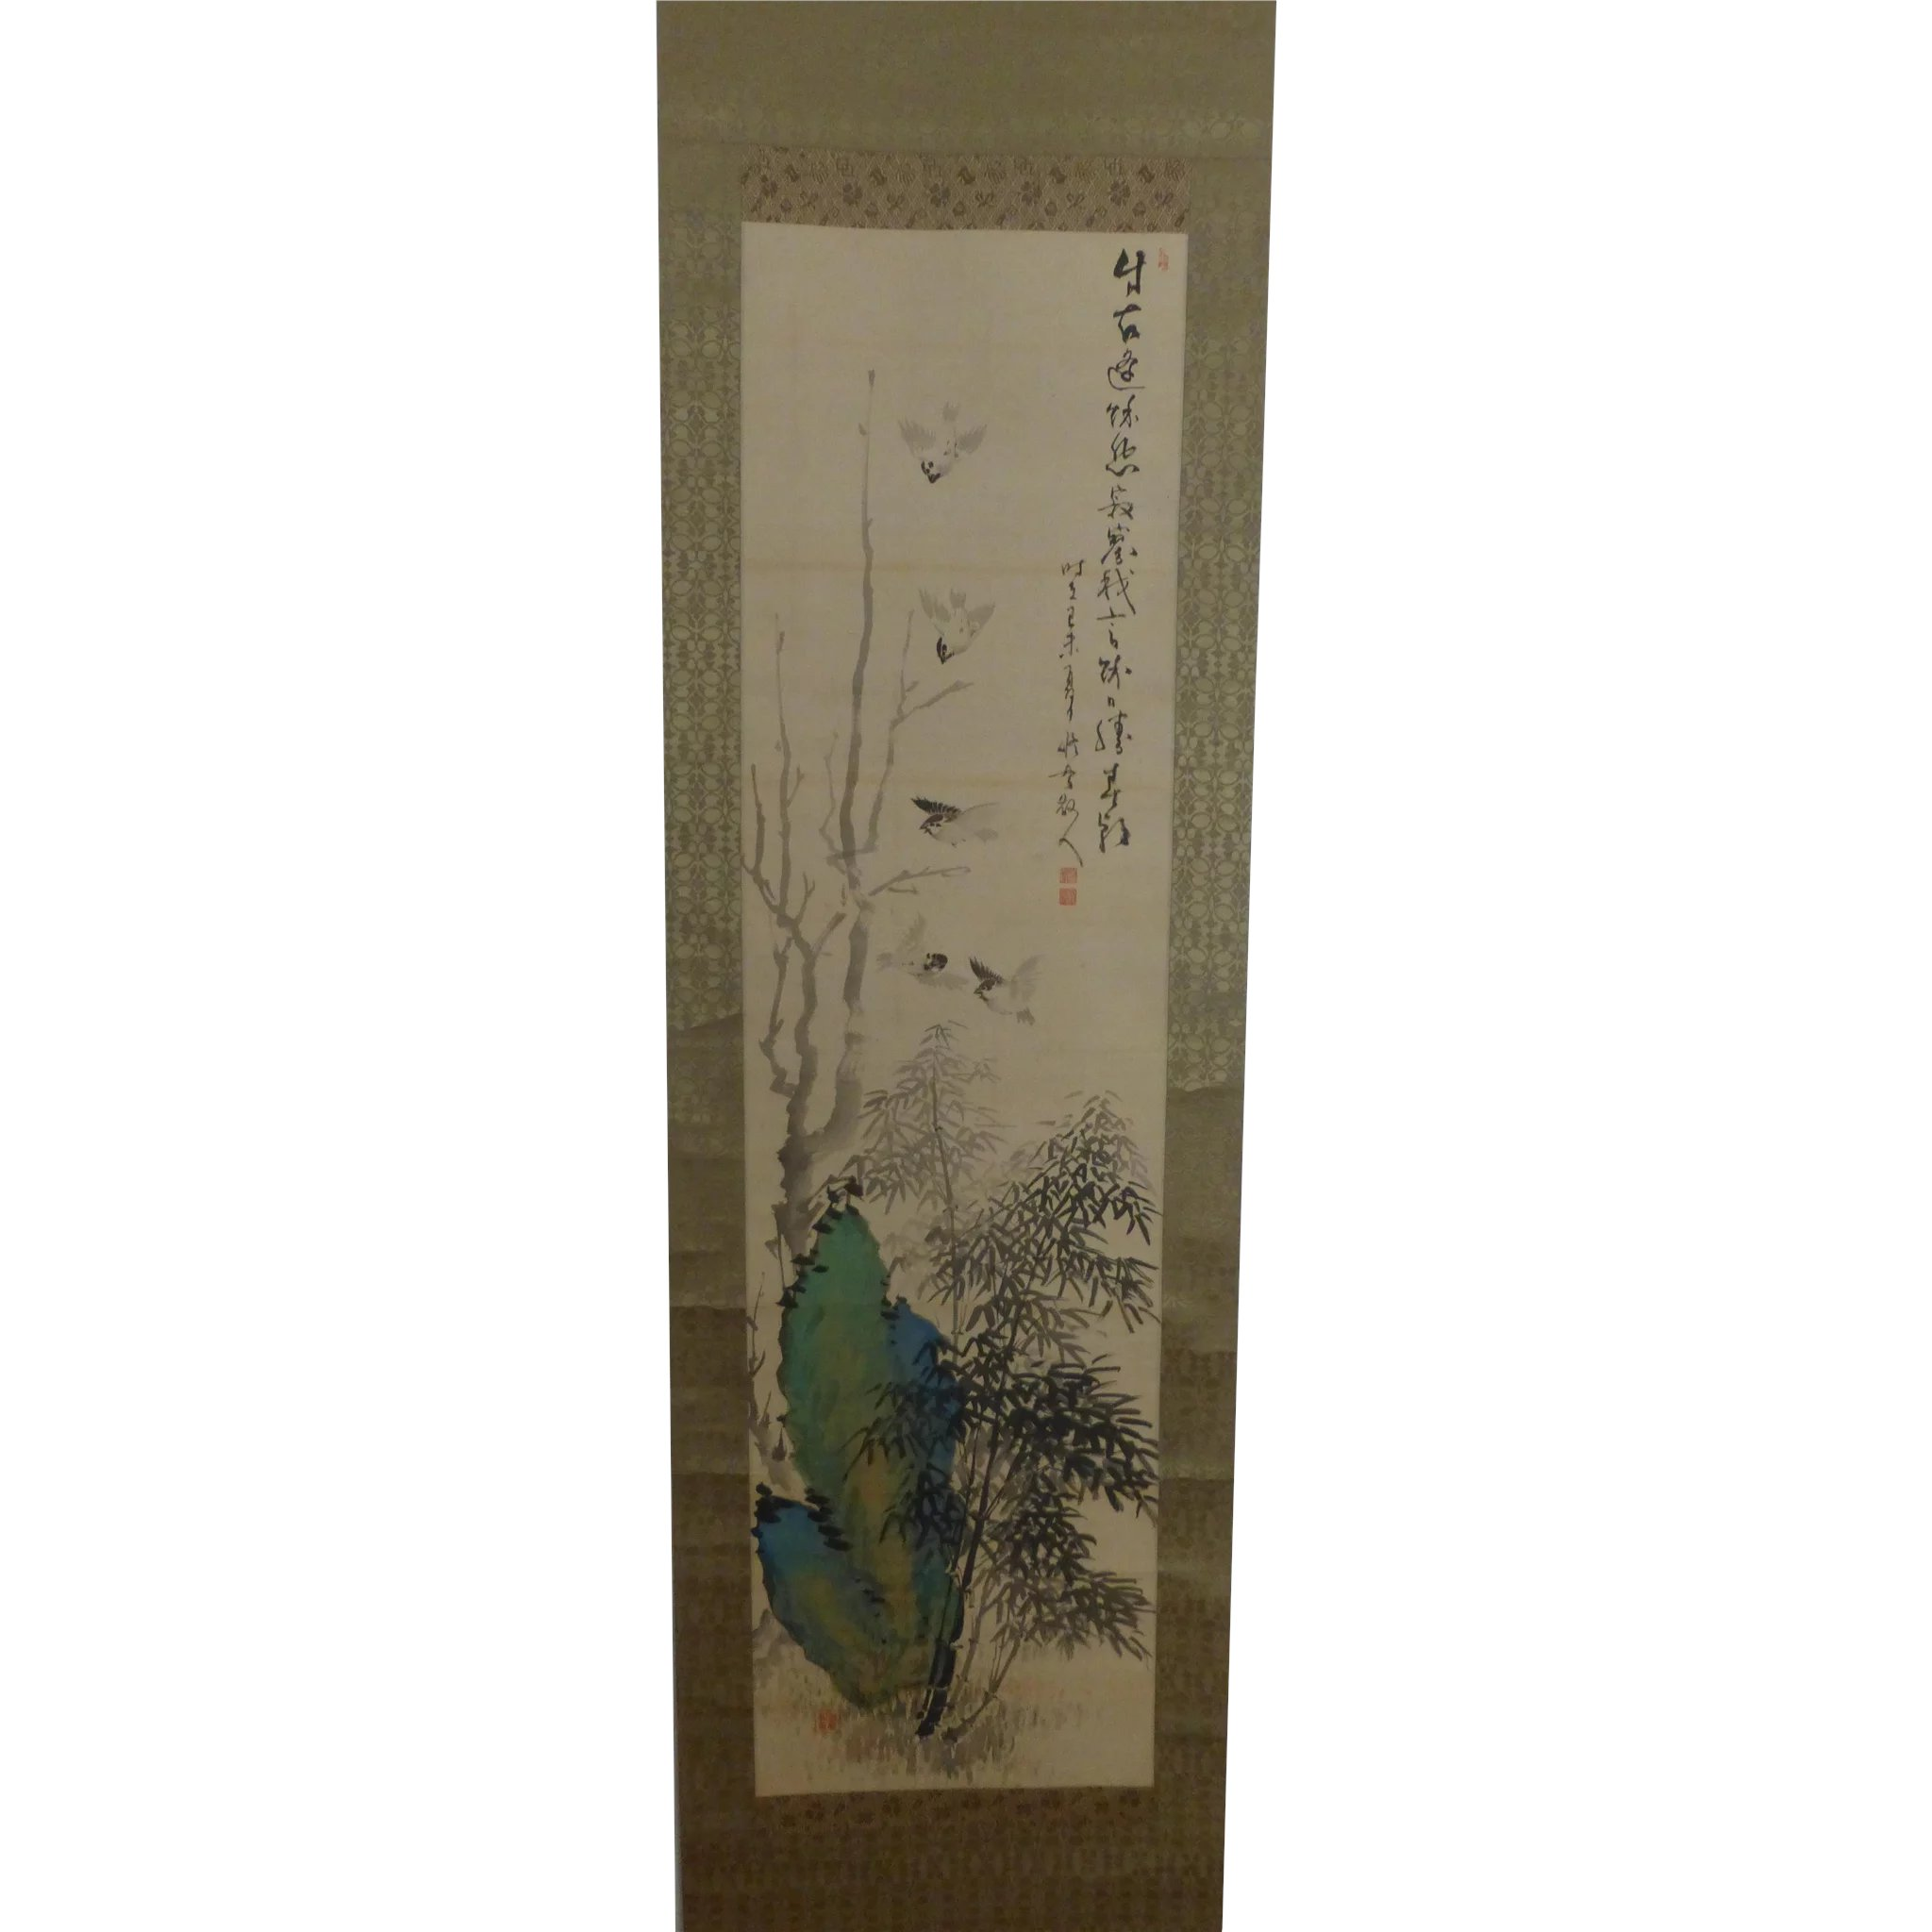 Antique Japanese Scroll: Antique Japanese Scroll Painting Bamboo Birds Rock